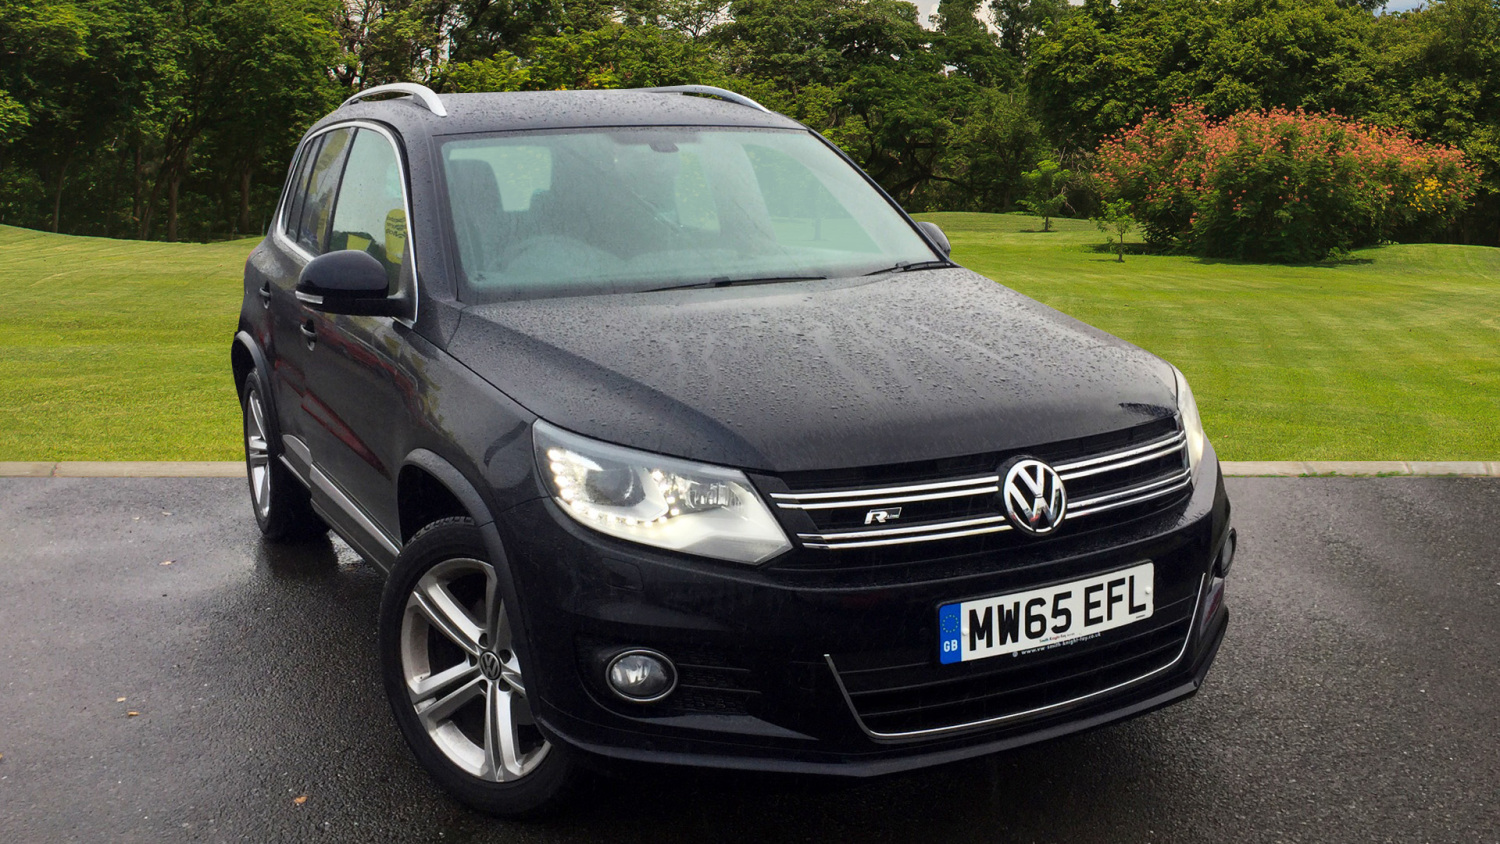 used volkswagen tiguan 2 0 tdi bluemotion tech r line 150. Black Bedroom Furniture Sets. Home Design Ideas